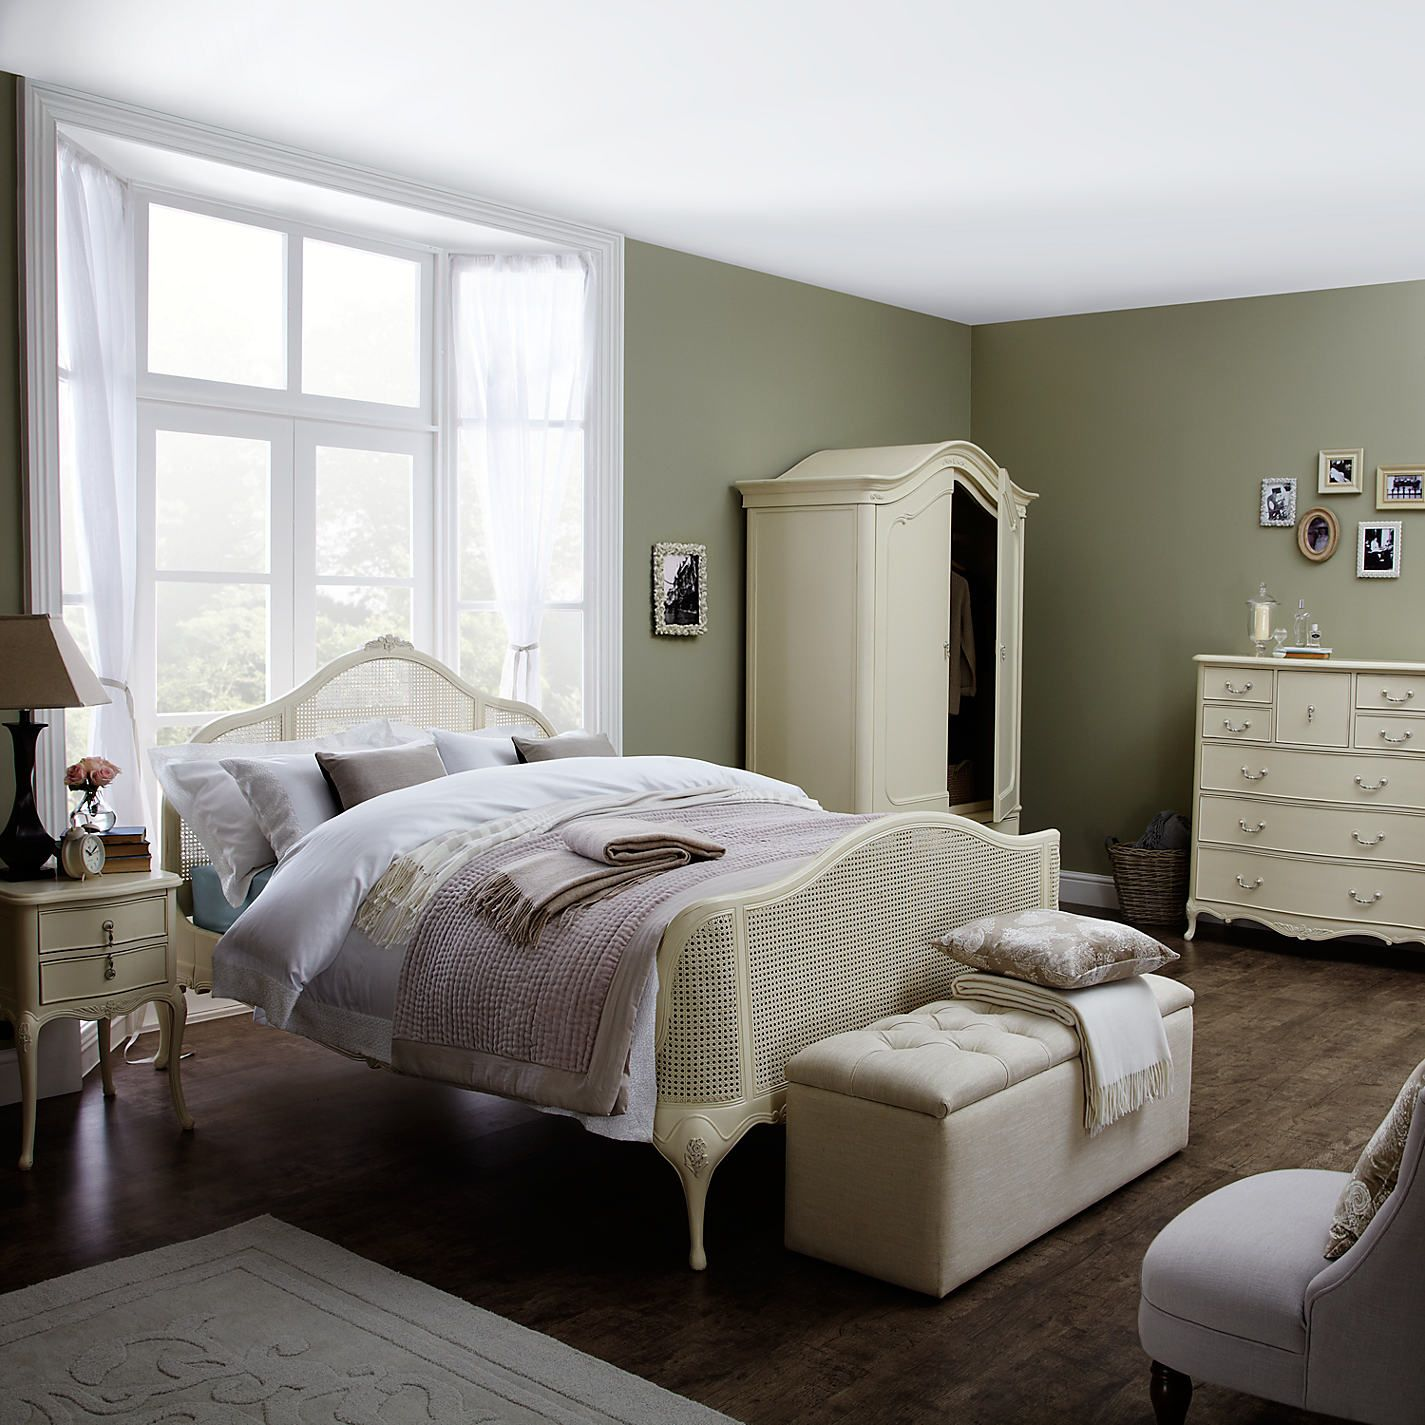 Bedroom Chairs At John Lewis Bedroom Guardian Bed Bugs Bedroom Ideas Apartment Bedroom Paint Colors For Sleeping: John Lewis Rattan Bed